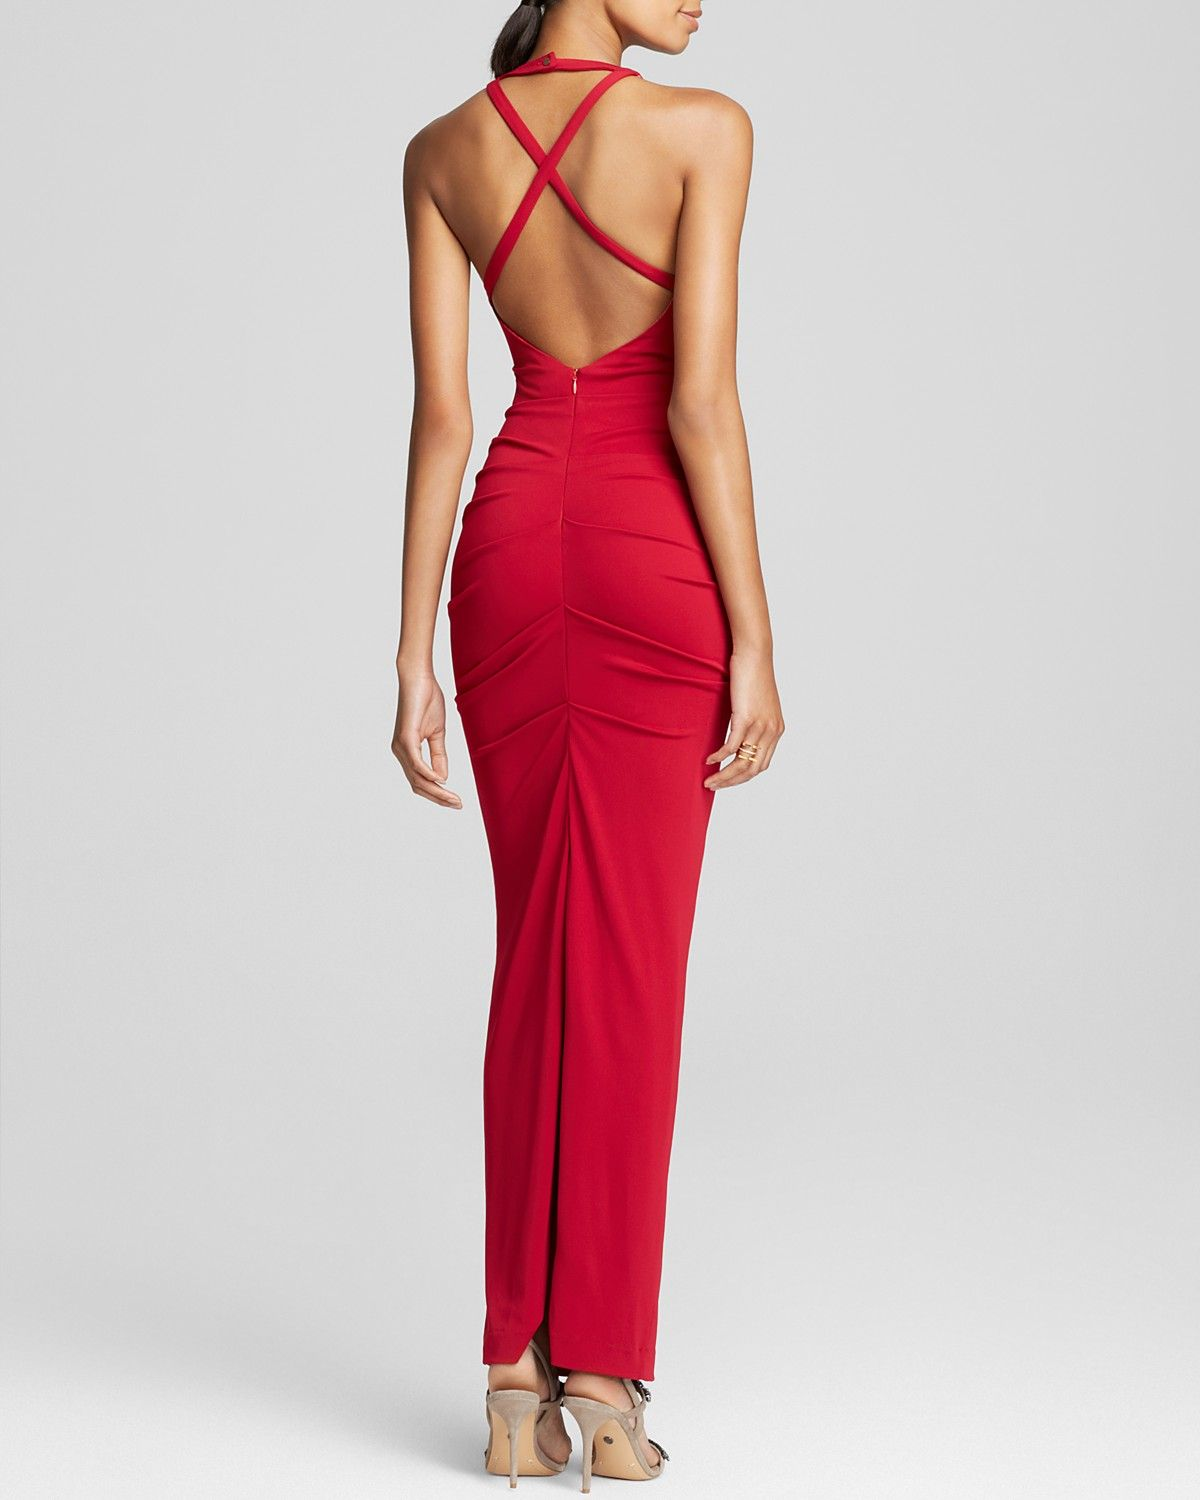 52c9f4b3bb6 Red Evening Dresses Bloomingdales - Gomes Weine AG